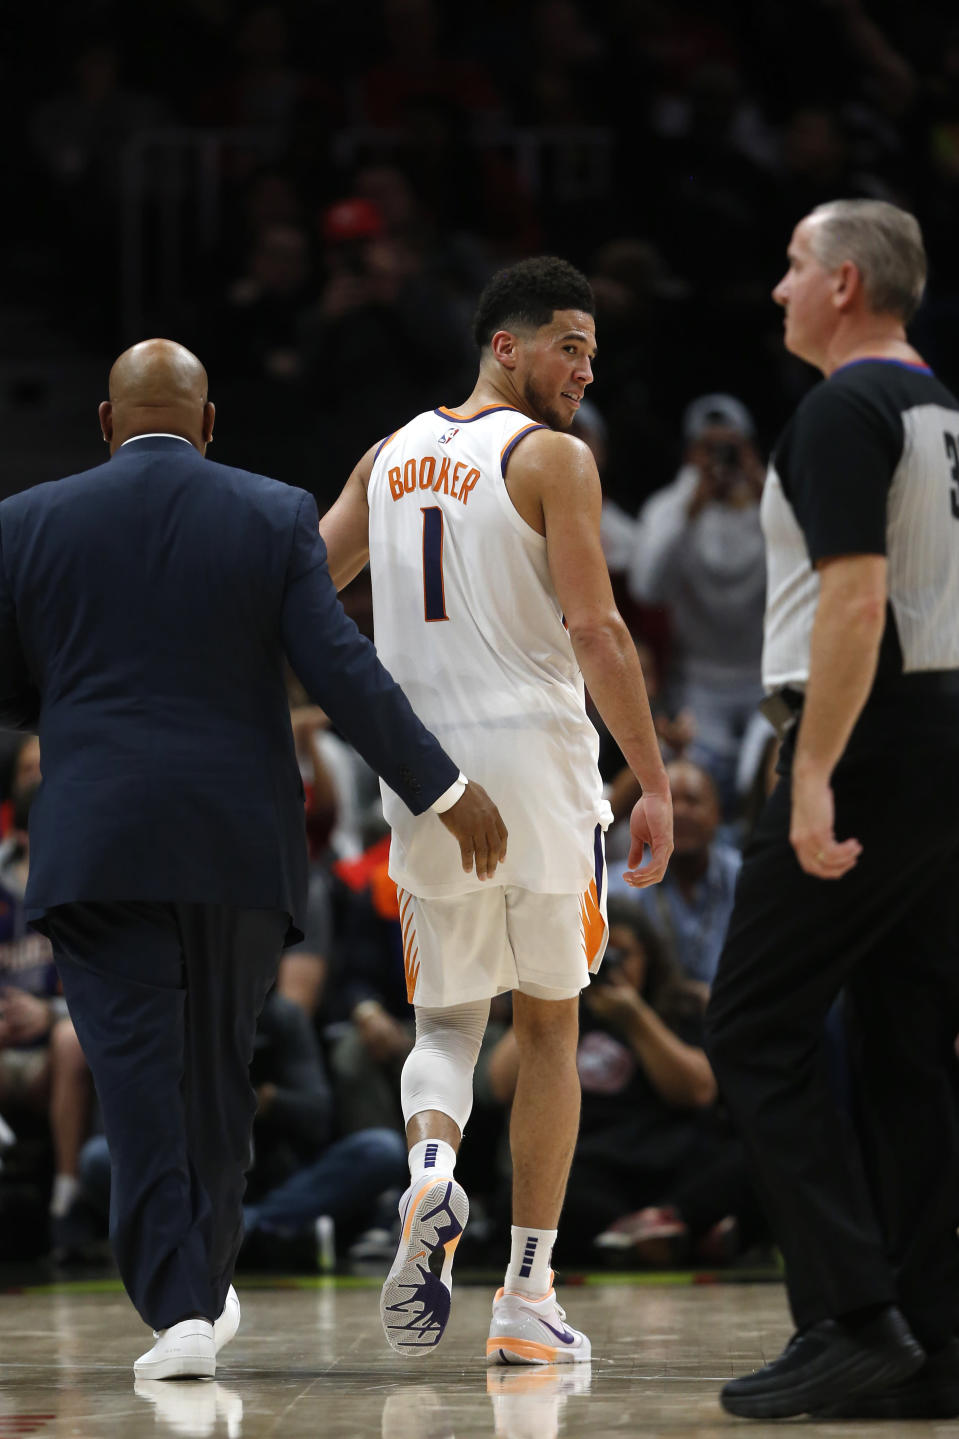 Phoenix Suns guard Devin Booker (1) looks back at an official as he leaves the court after being ejected in the second half of an NBA basketball game against the Atlanta Hawks Tuesday, Jan. 14, 2020, in Atlanta. The Hawks won 123-110. (AP Photo/John Bazemore)